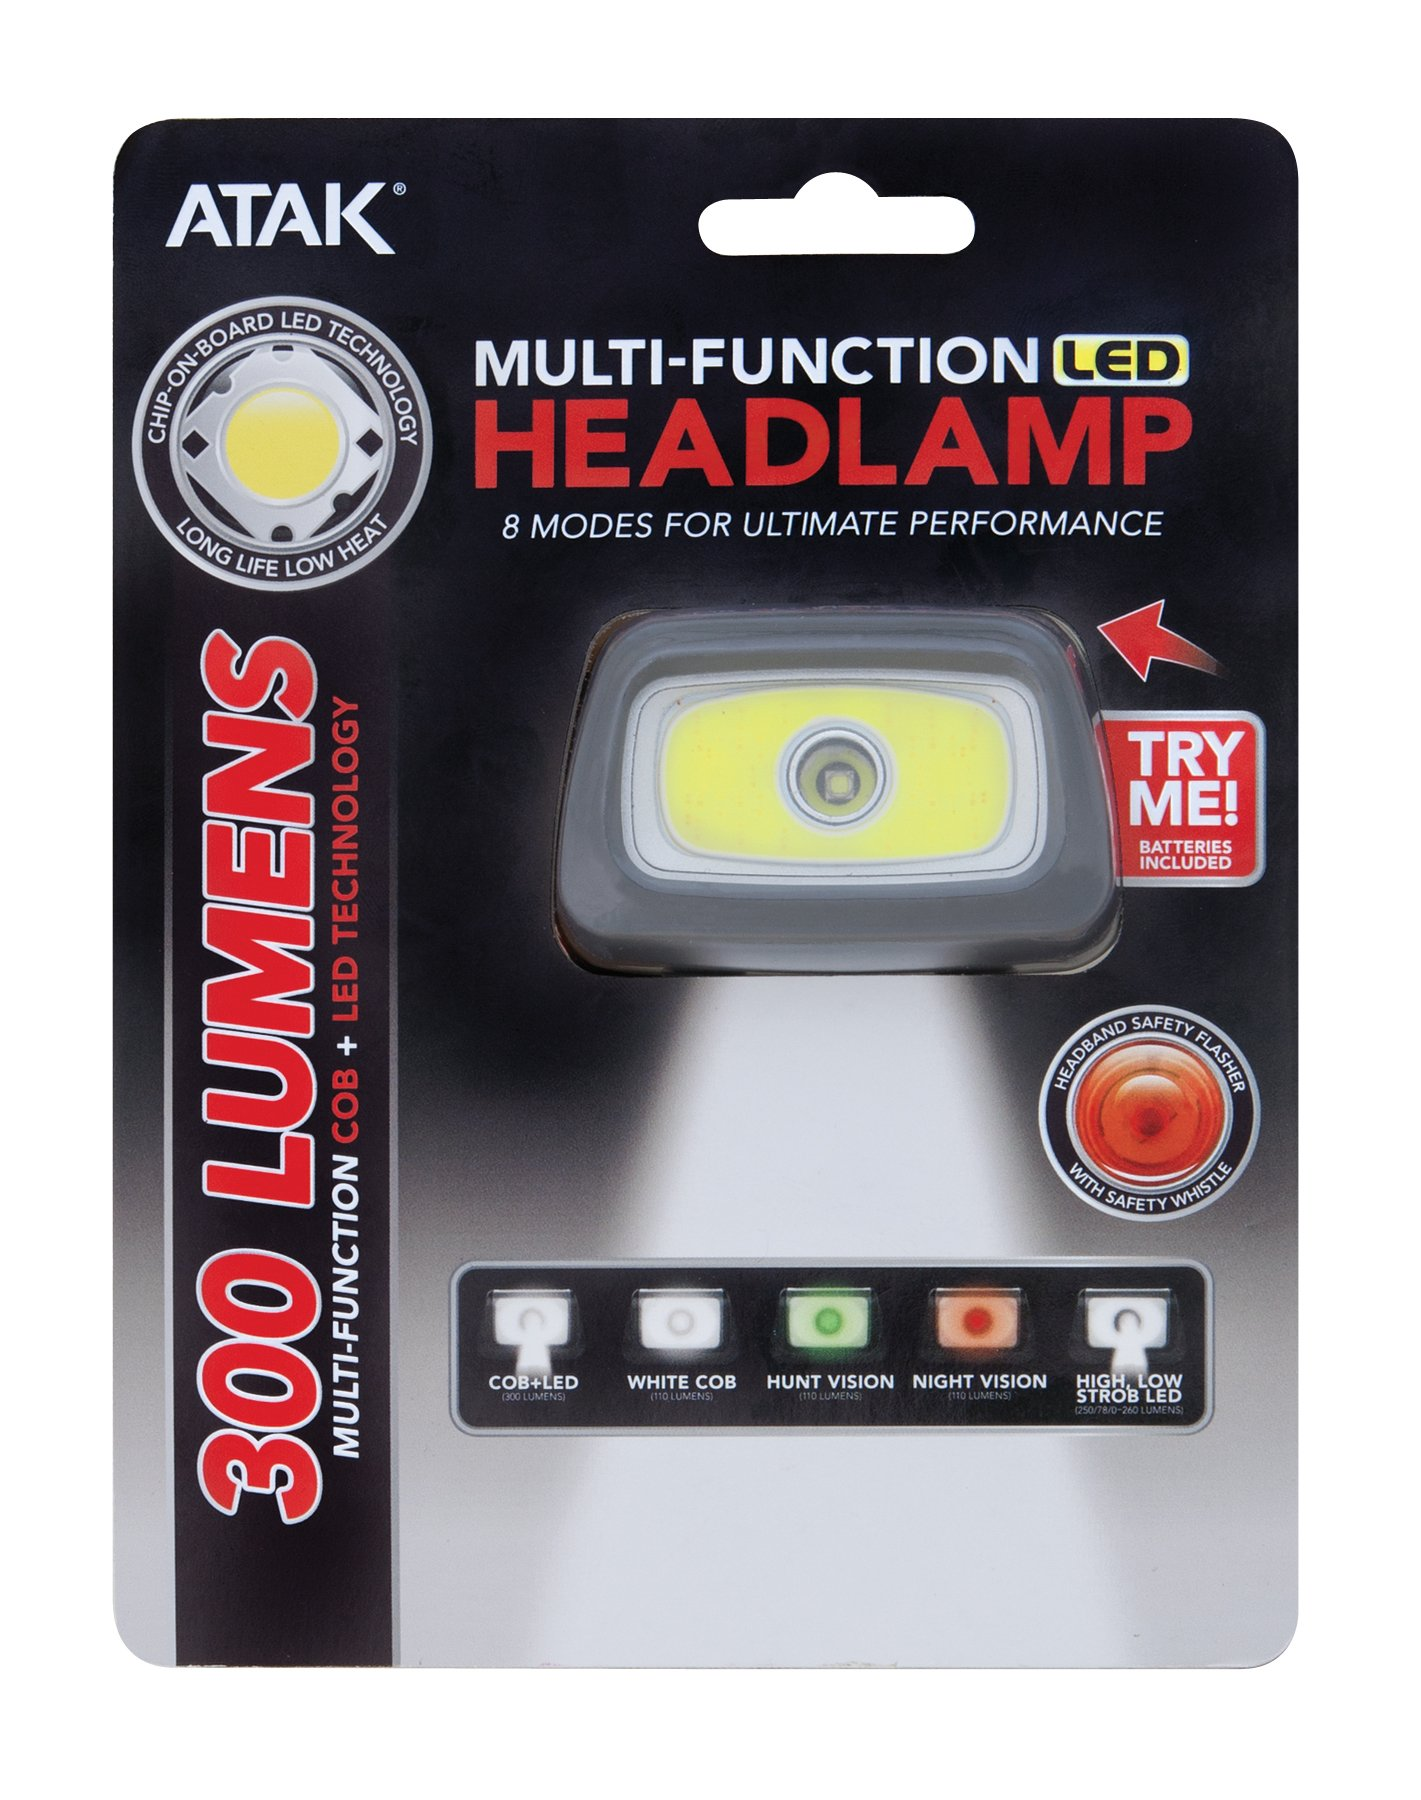 ATAK Model 372-300 Lumen Multi-Function COB LED Headlamp (High, Low, Green, Red and Strobe Settings) by Performance Tool (Image #1)